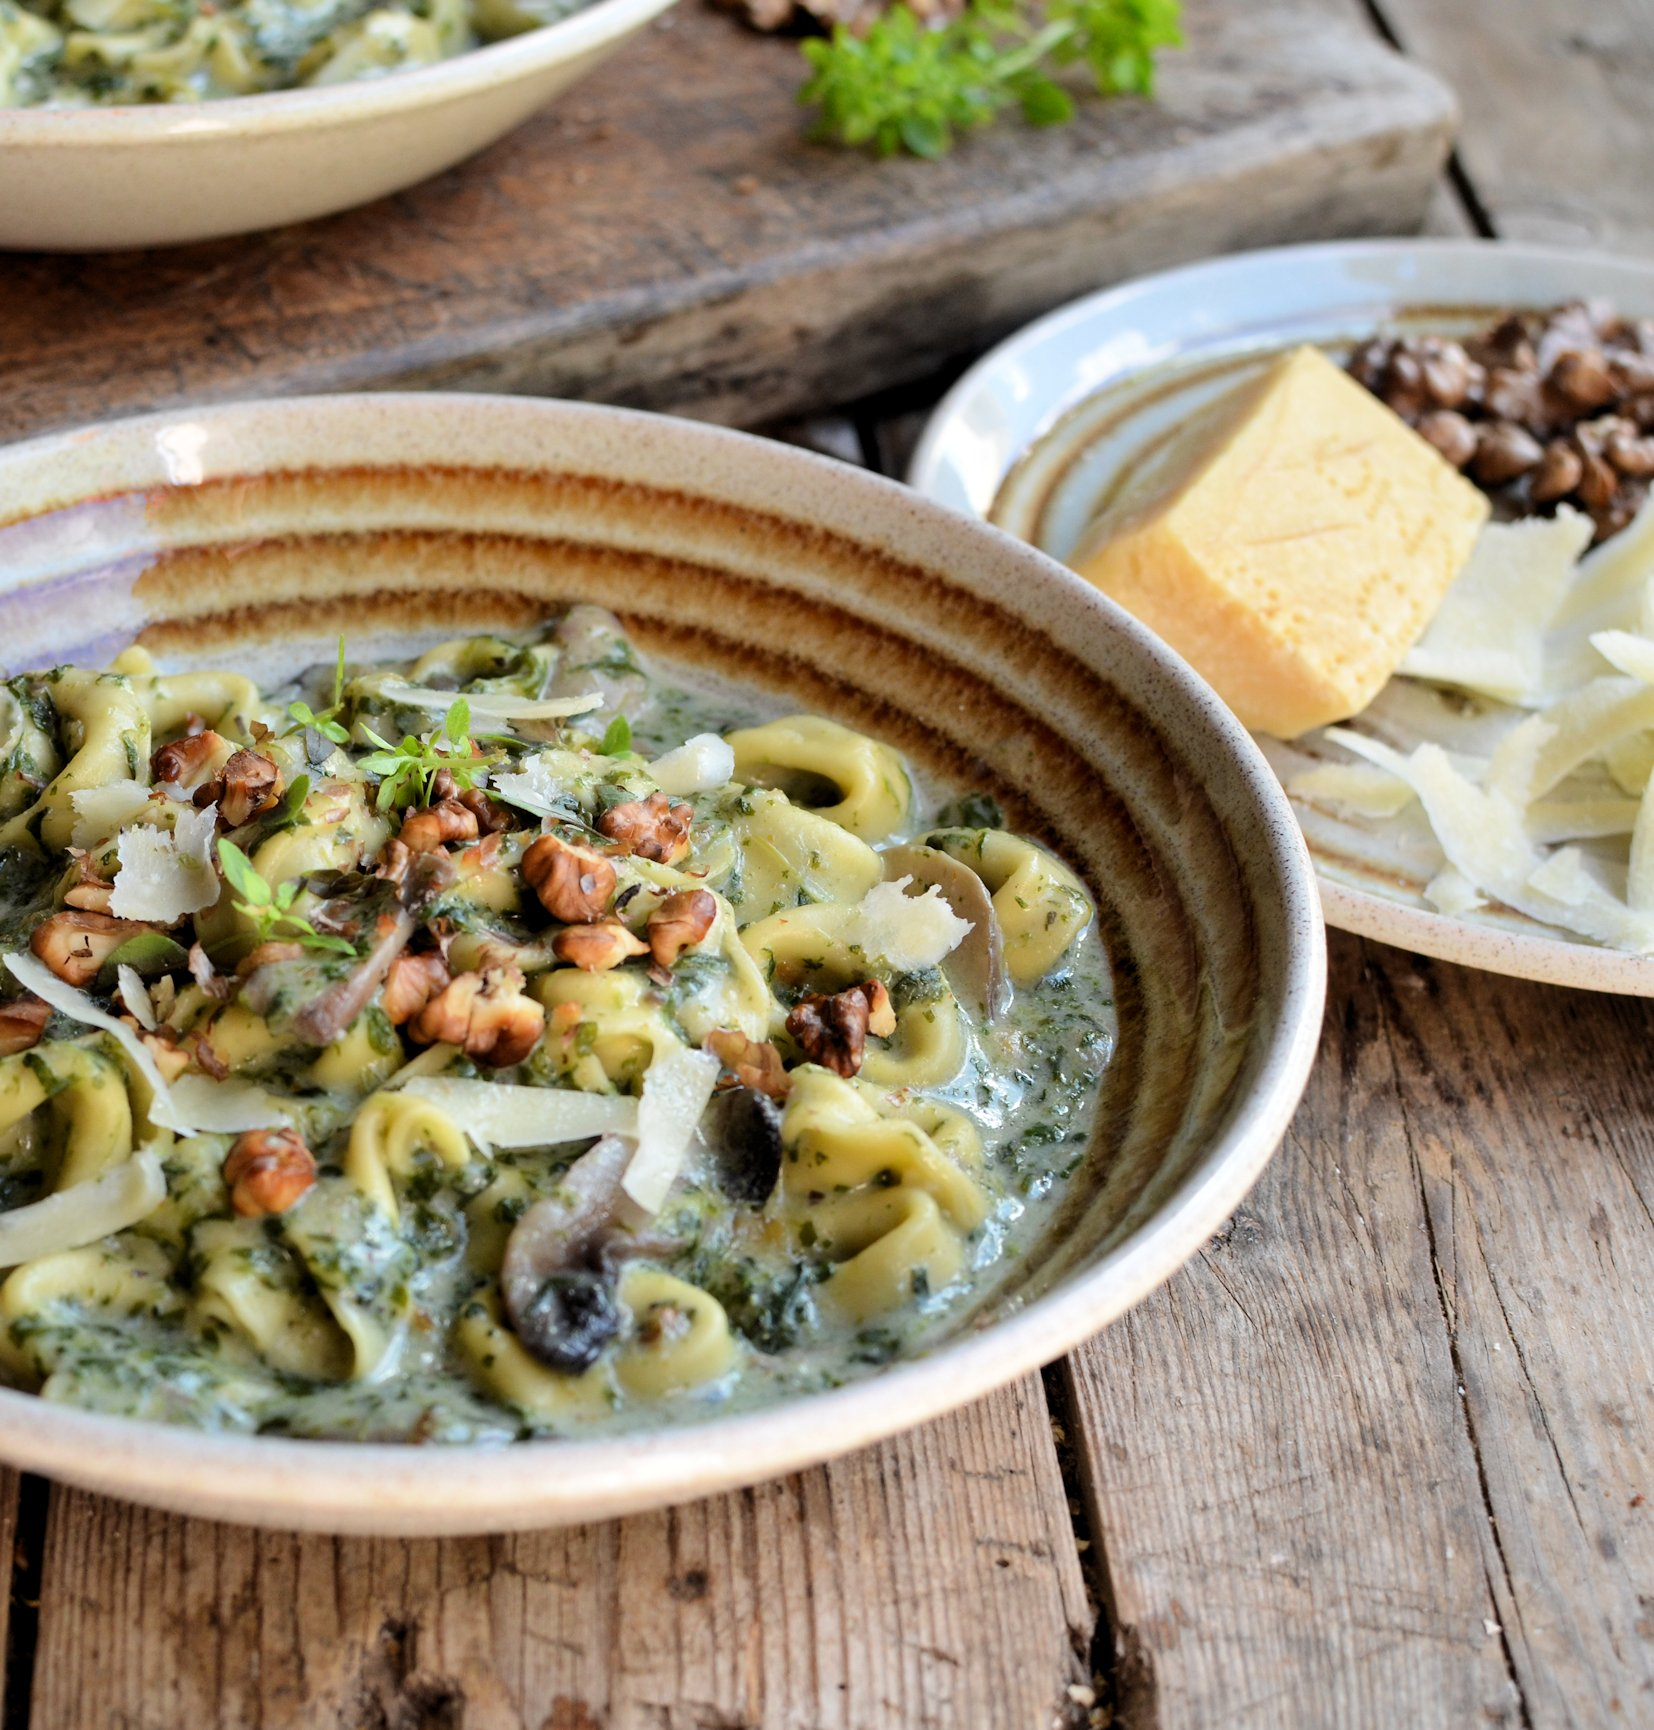 The Secret Recipe ClubCreamy Tortellini, Mushroom and Spinach Soup